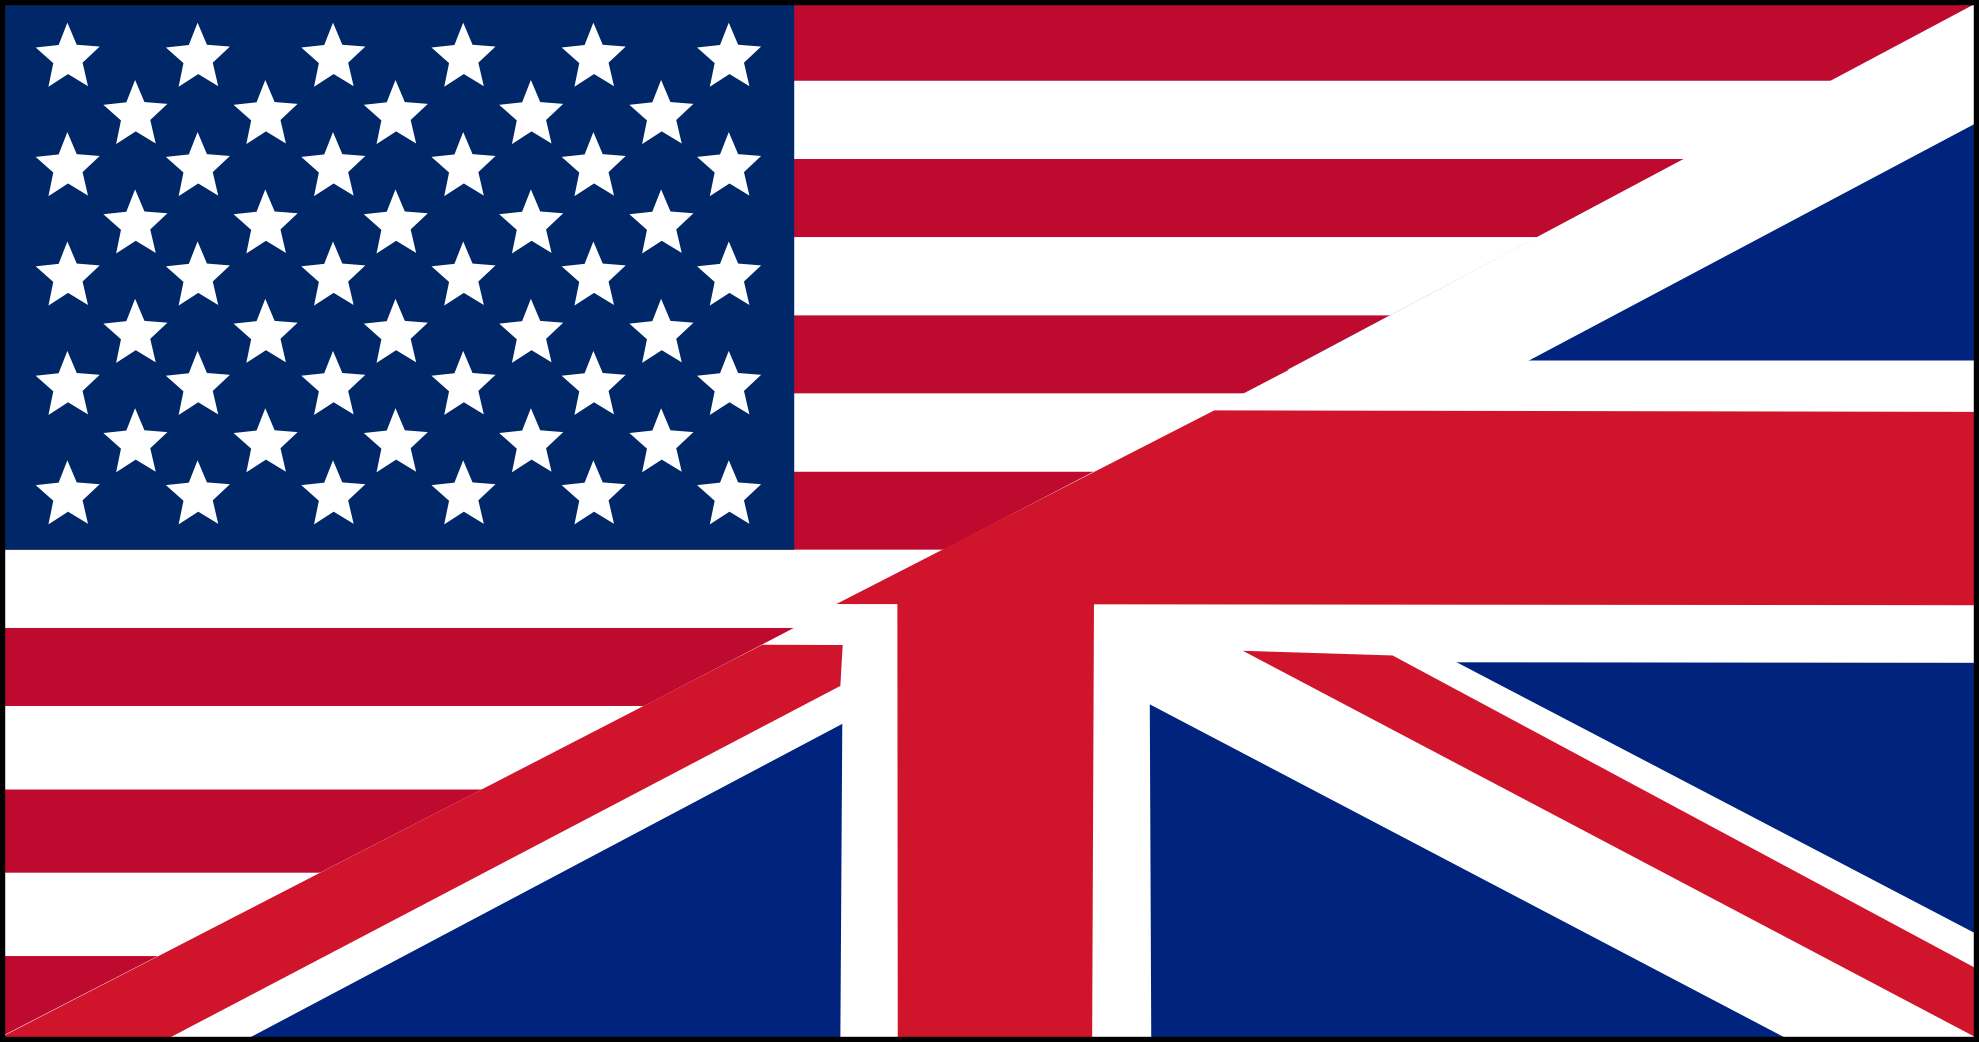 10 Image Of British Flag Free Cliparts T-10 Image Of British Flag Free Cliparts That You Can Download To You-13